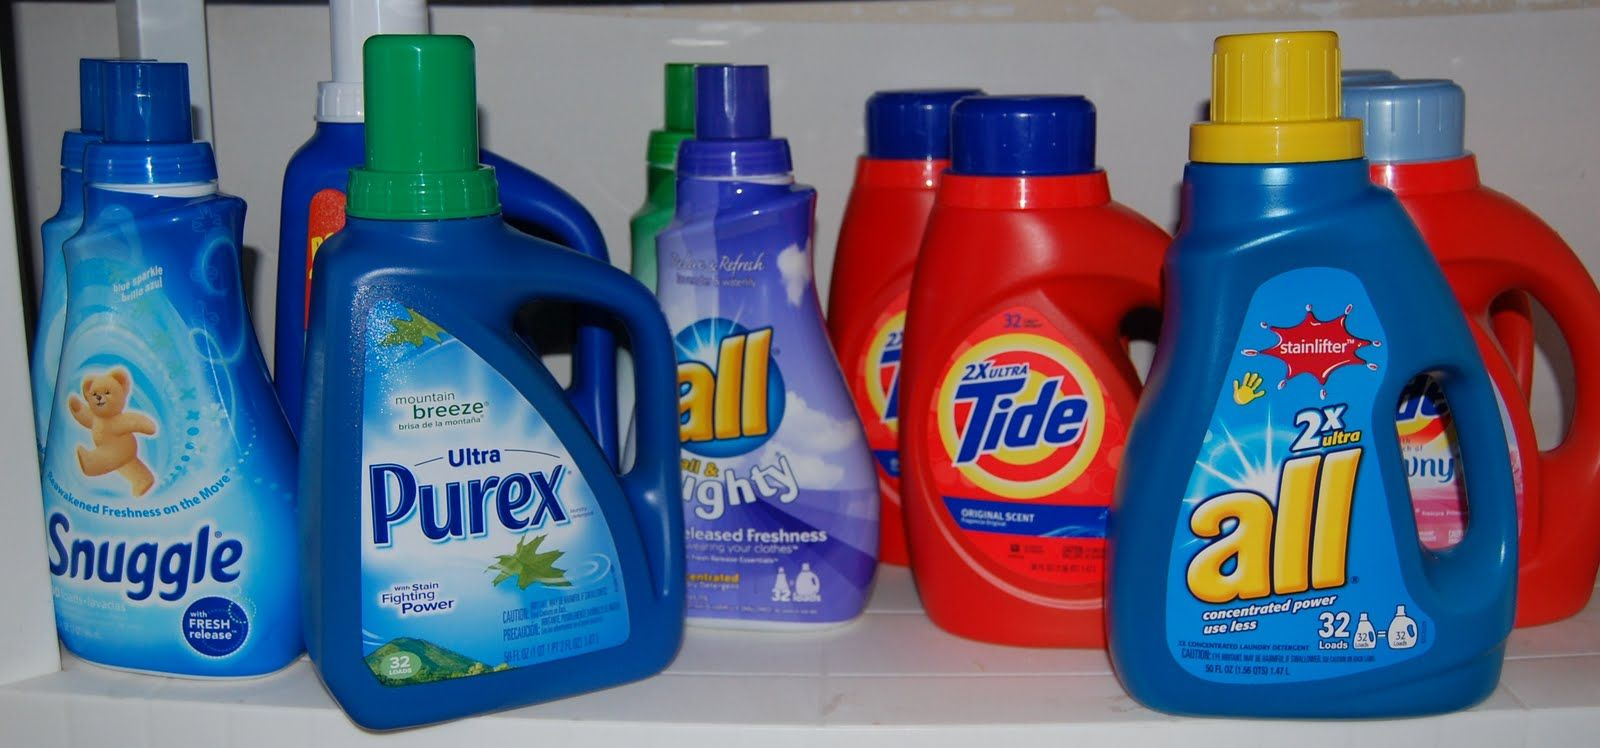 02a0e4977fbd7a9a92fd056a592c41f5 - How To Get Blue Laundry Detergent Out Of Clothes